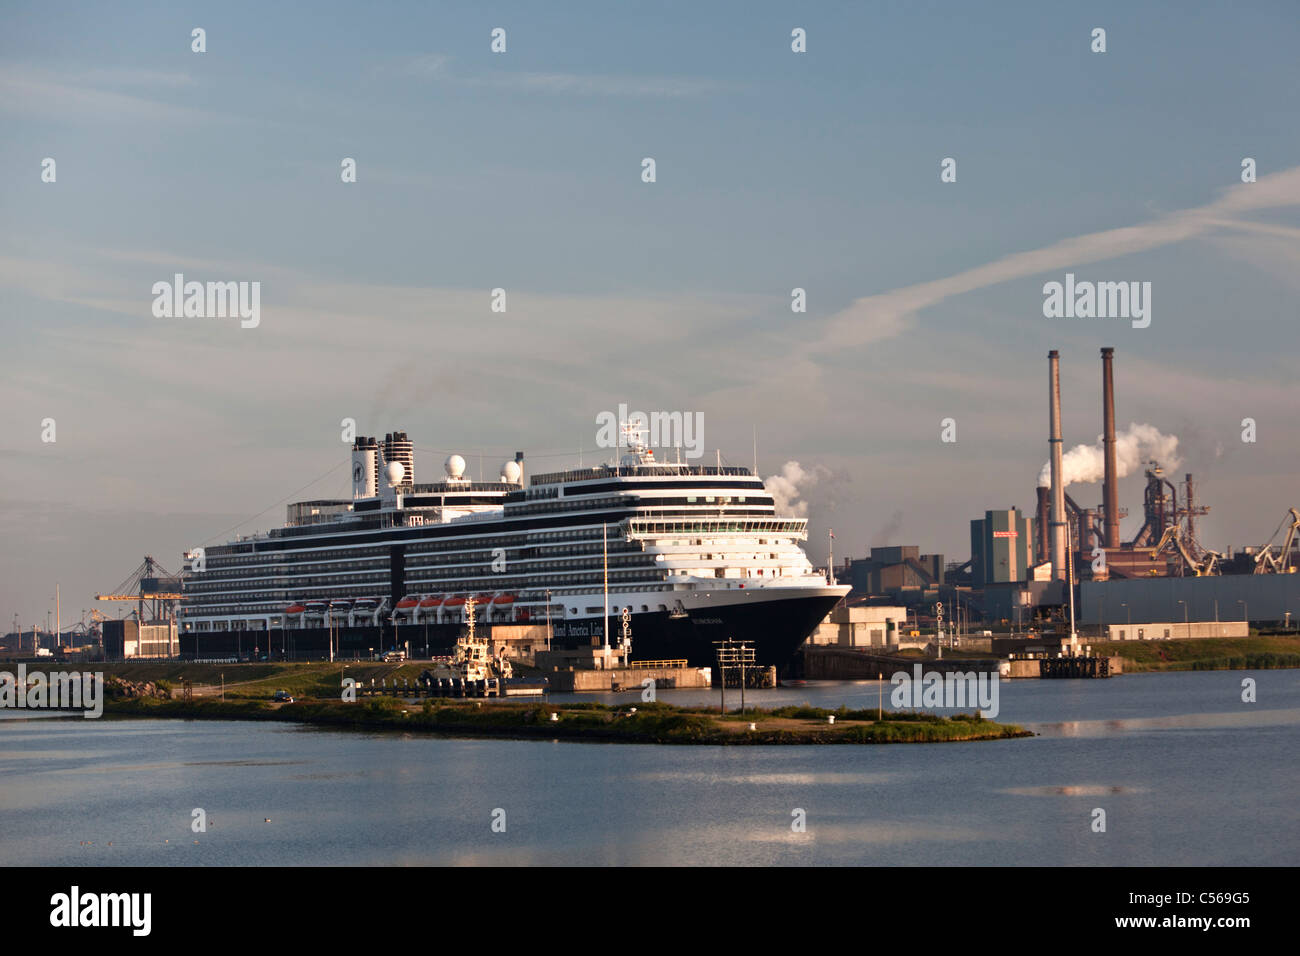 The Netherlands, IJmuiden, Eurodam cruise ship, belonging to Holland America Line, in locks of North Sea Canal. - Stock Image